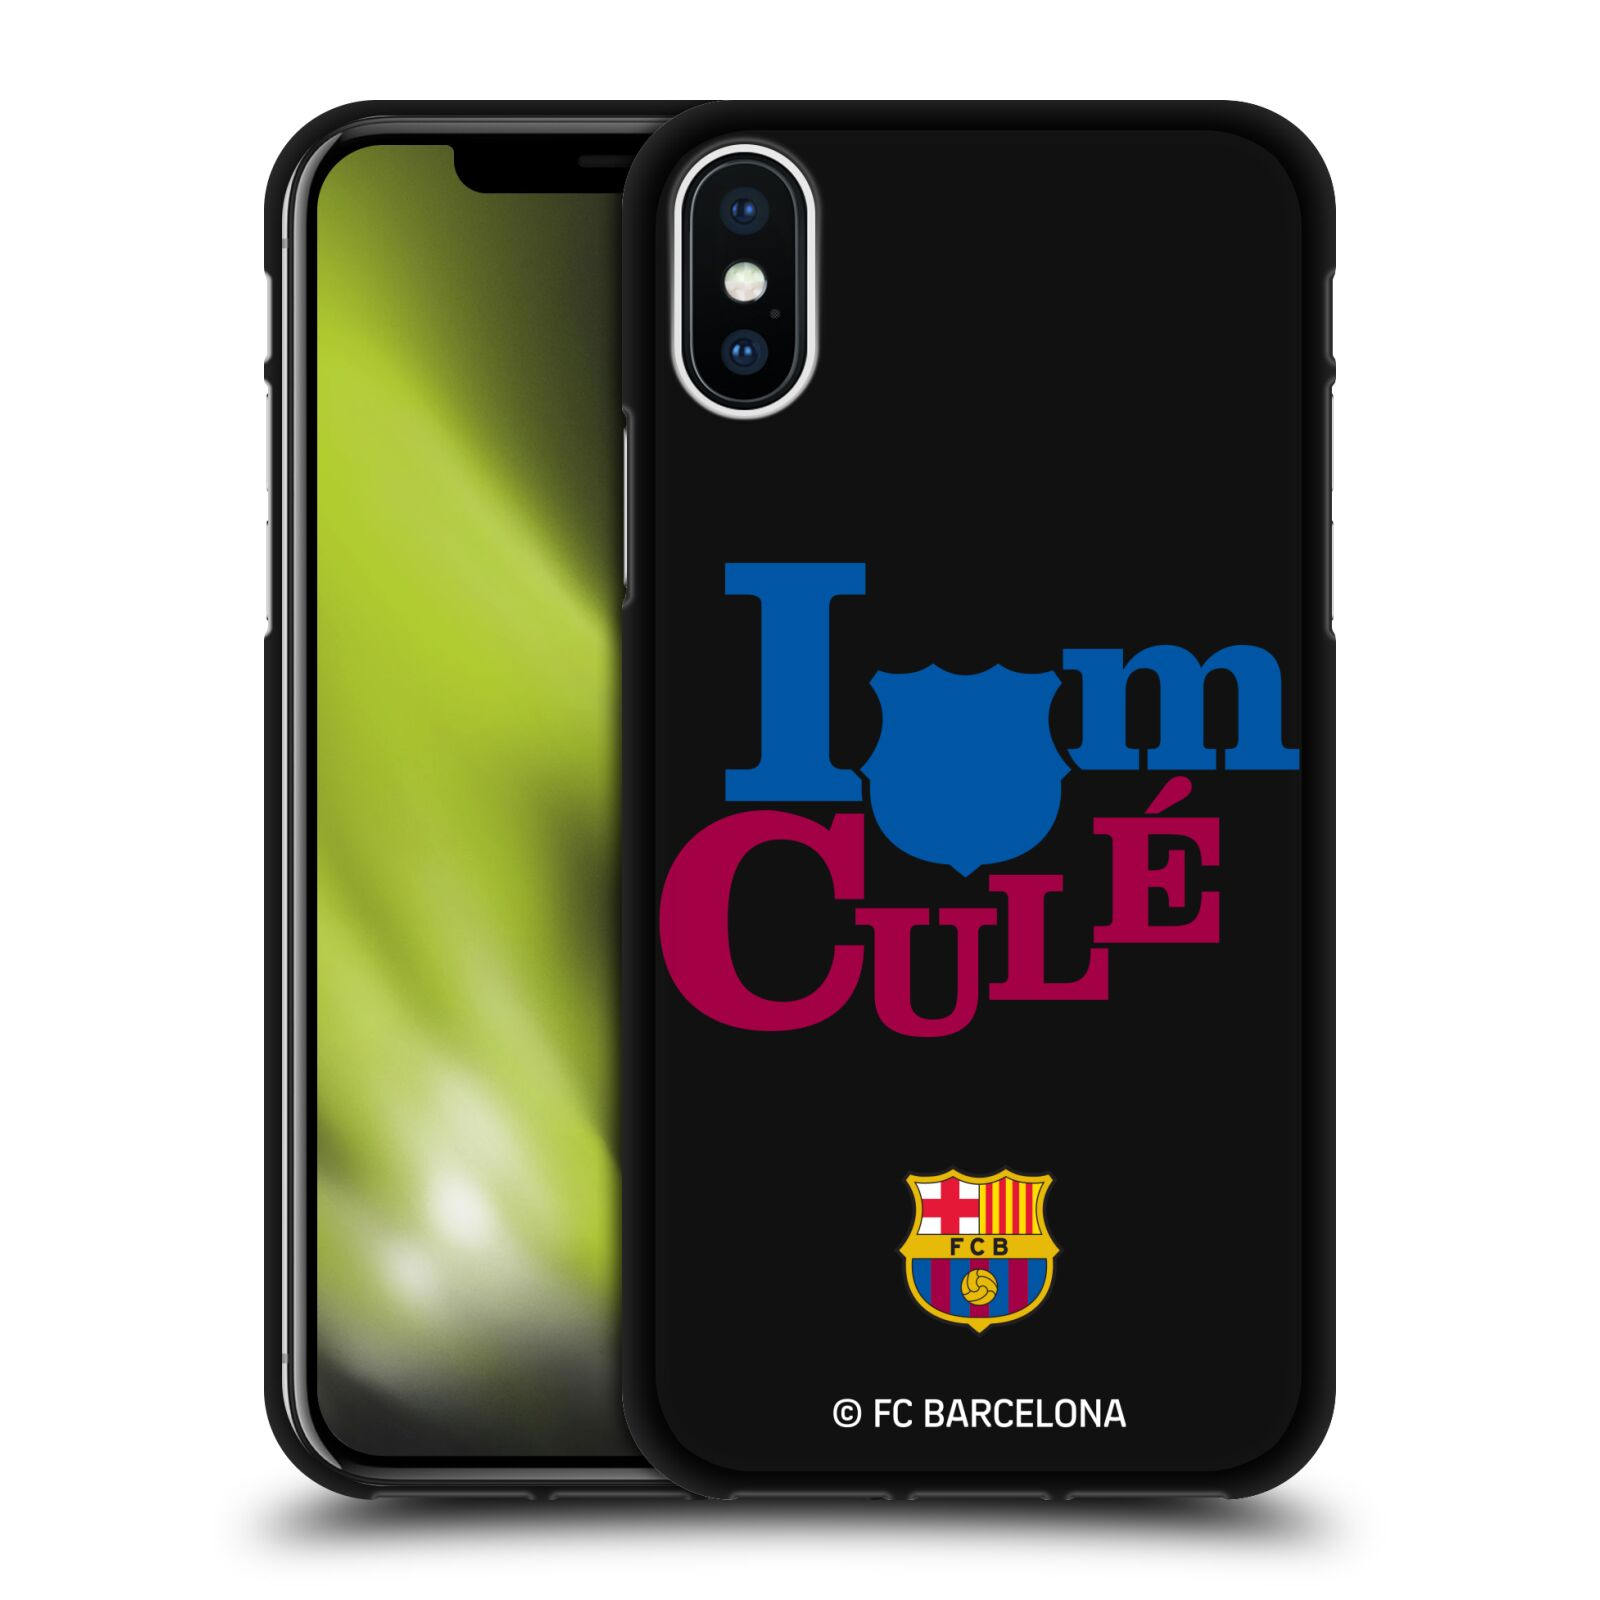 OFFICIAL-FC-BARCELONA-2017-18-CAMPIONS-BLACK-GEL-CASE-FOR-APPLE-iPHONE-PHONES